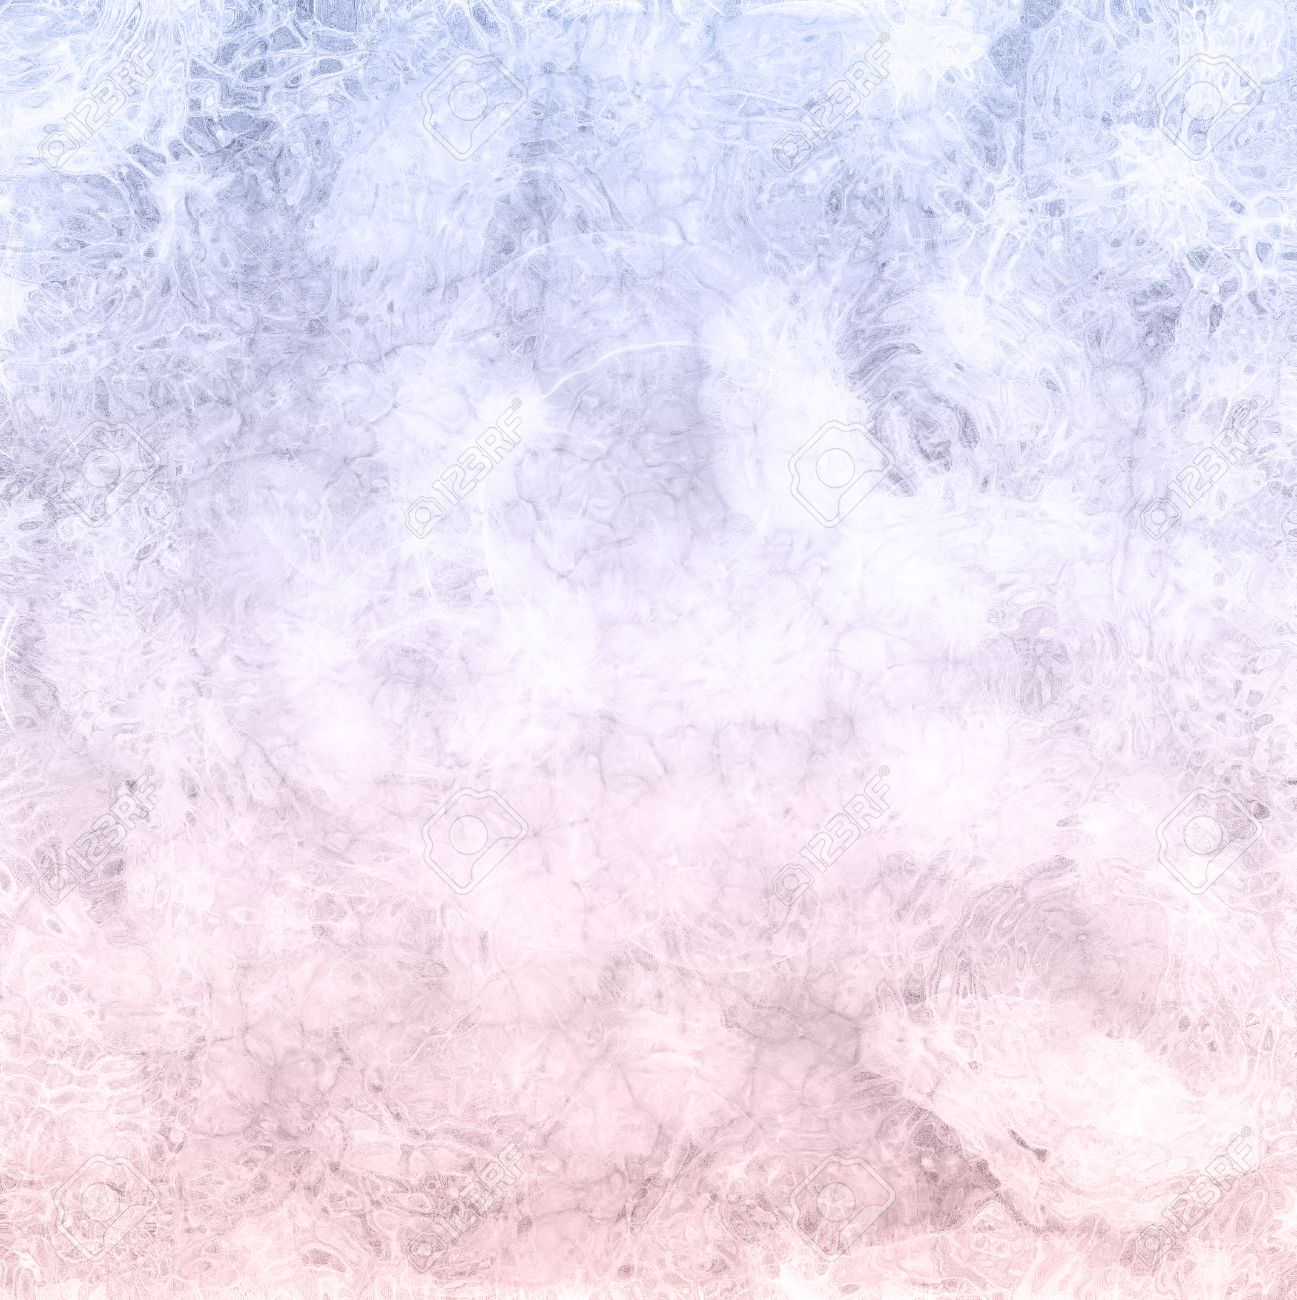 Abstract Rose Quartz And Serenity Blue Marble Background Pattern Stock Photo Picture And Royalty Free Image Image 77331999